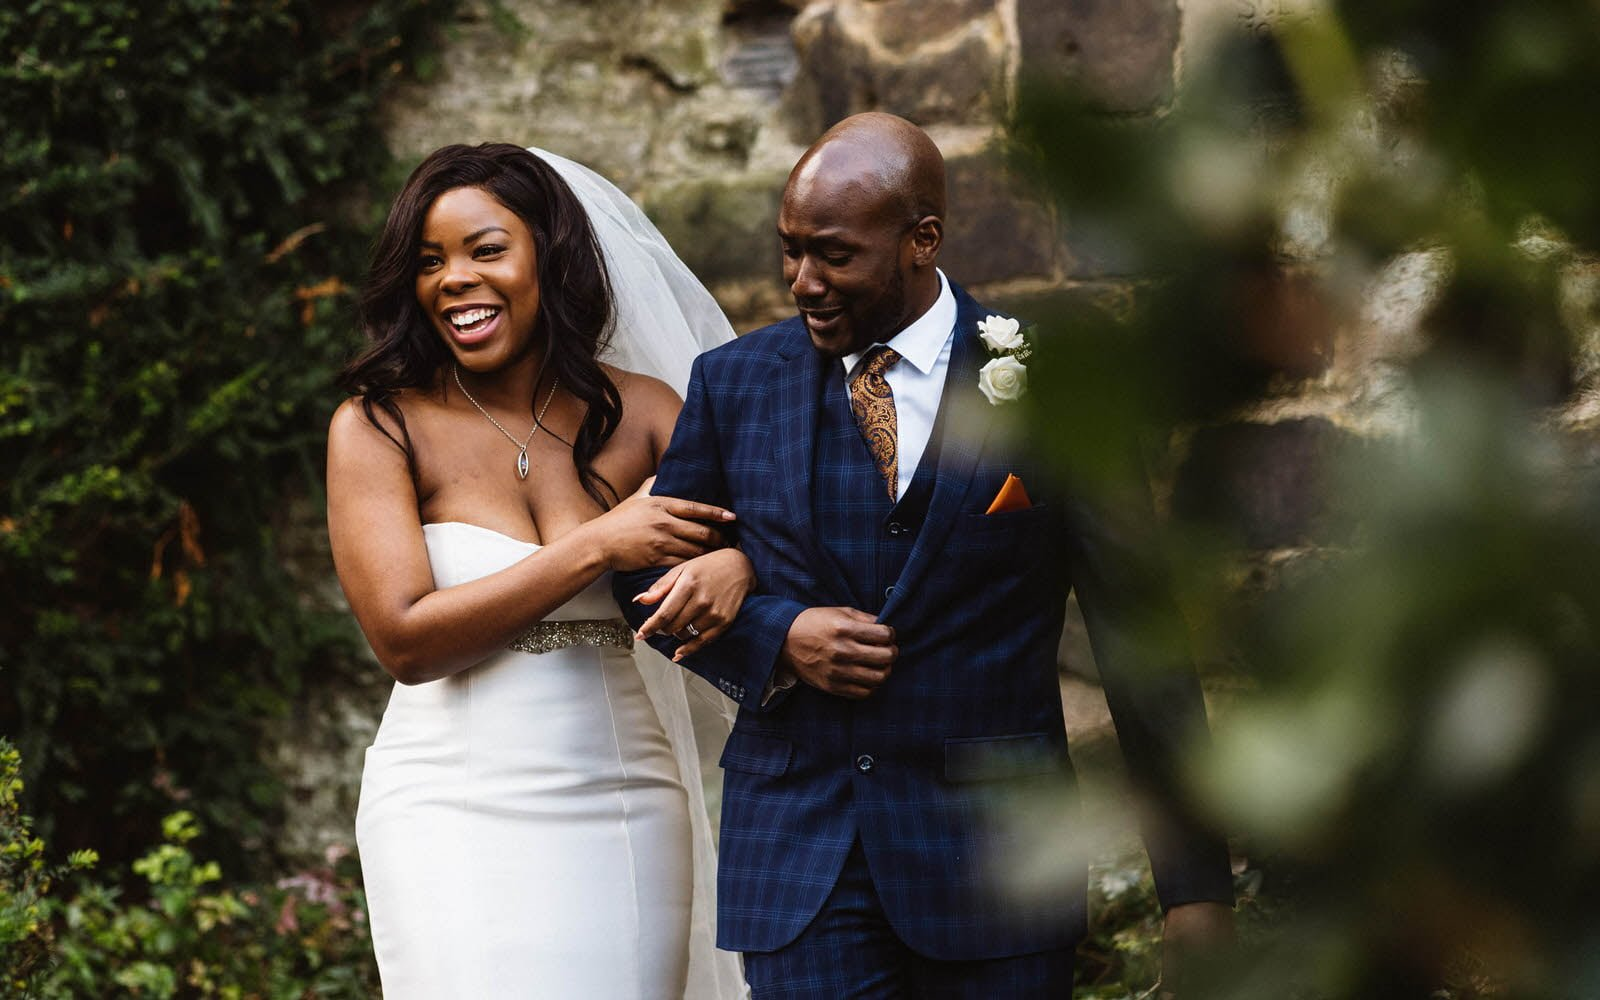 A couple arm in arm walking. The bride is stunning and beaming with joy and the groom looks dapper.